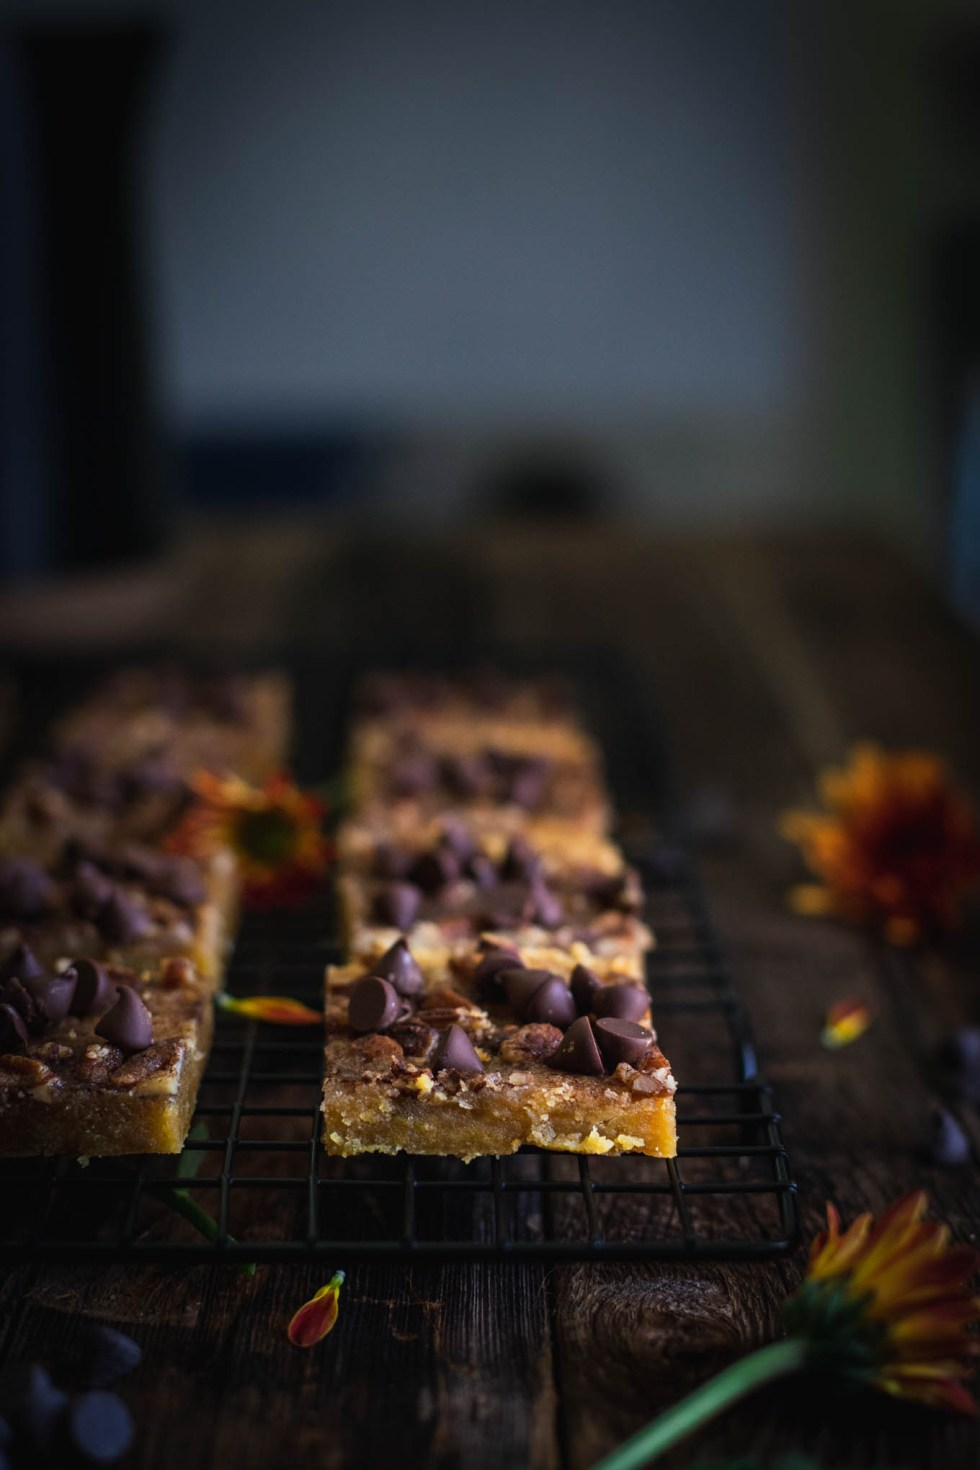 Pumpkin Pecan Toffee Bars cooling on a black cooling rack with orange flowers and chocolate chips scattered about